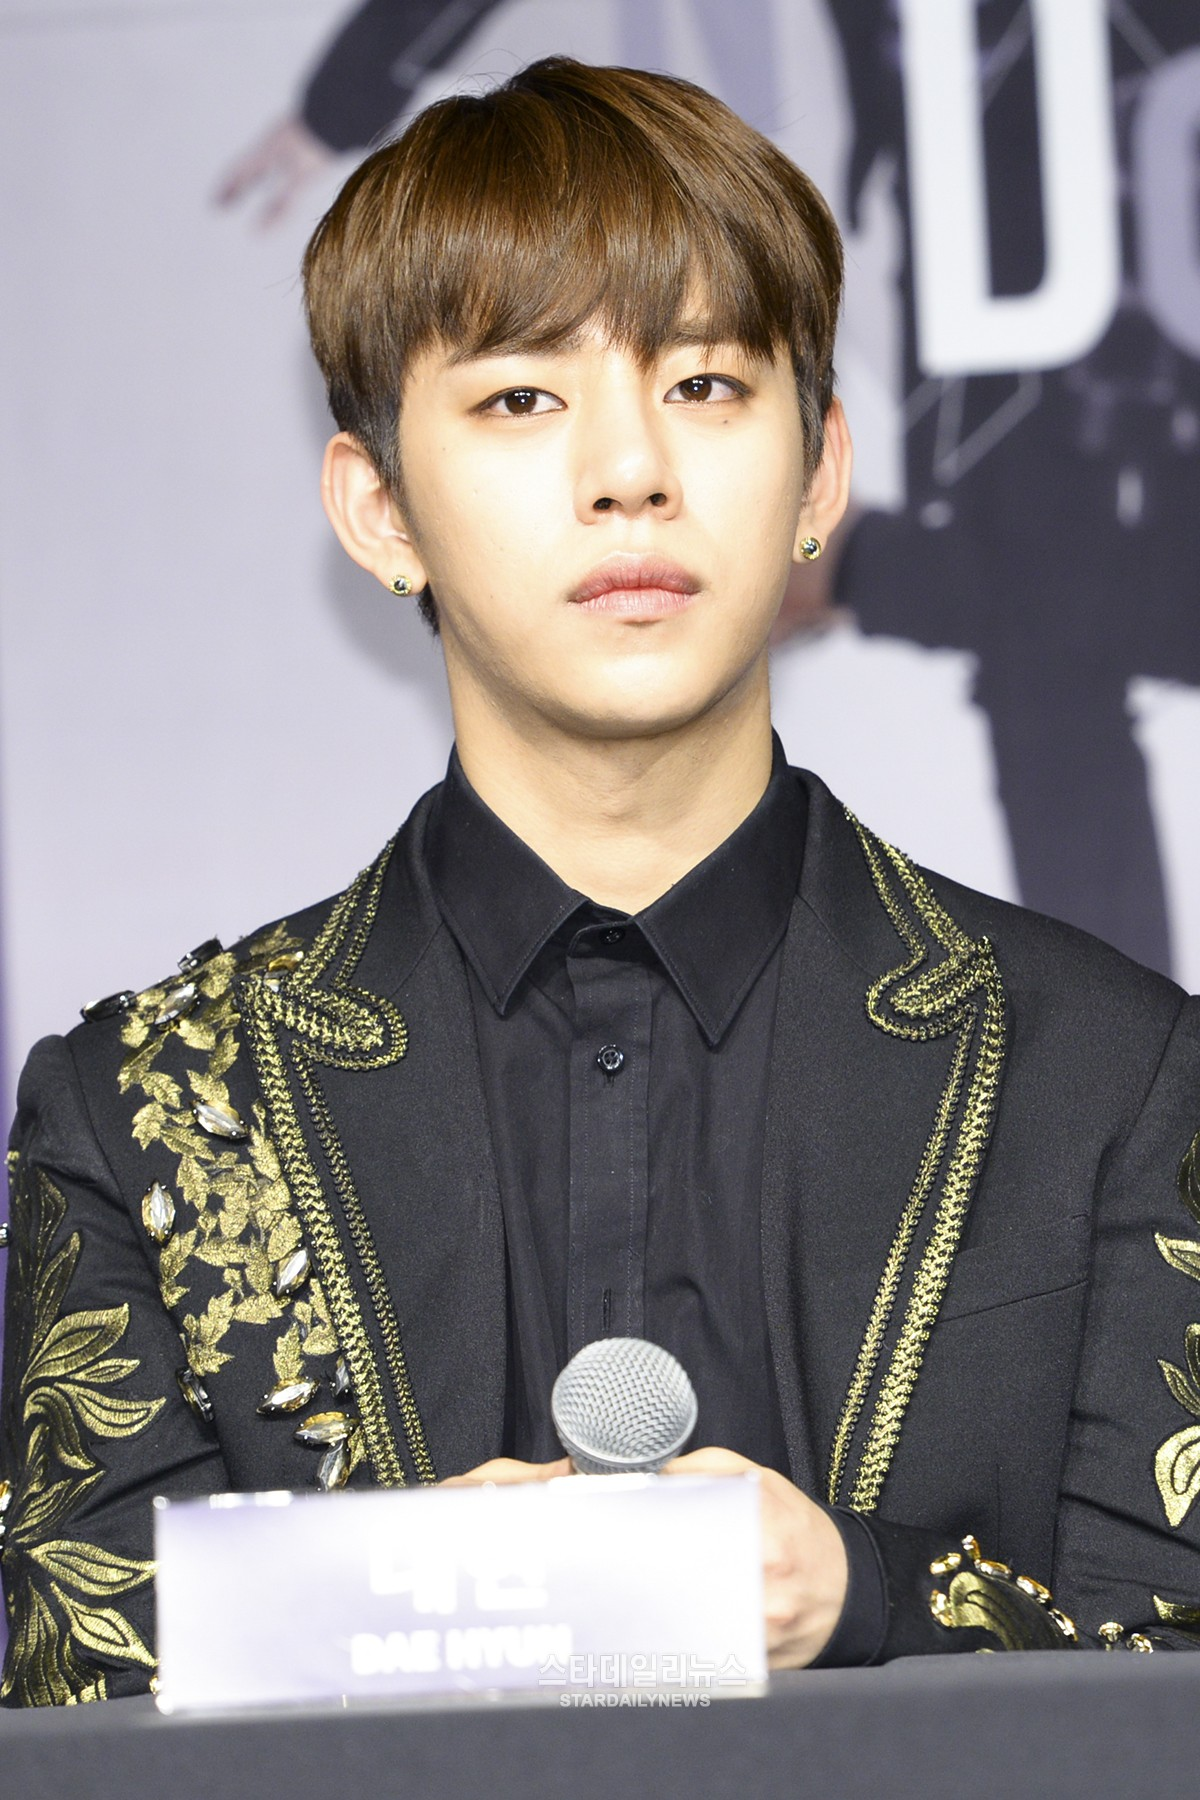 B.A.P's Daehyun Politely Asks Sasaengs To Stop Coming To Their Dorm